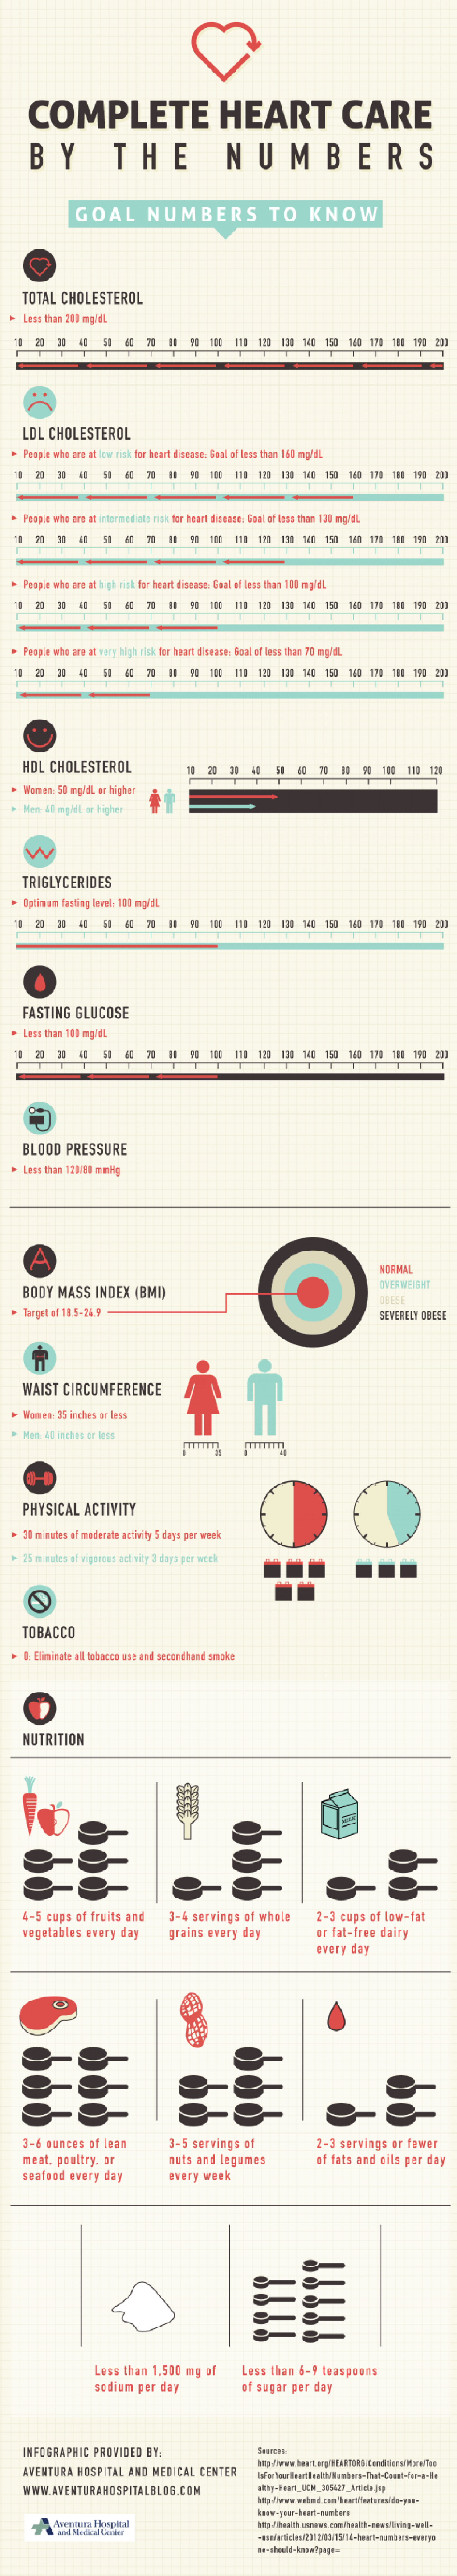 Complete Heart Care By the Numbers Infographic